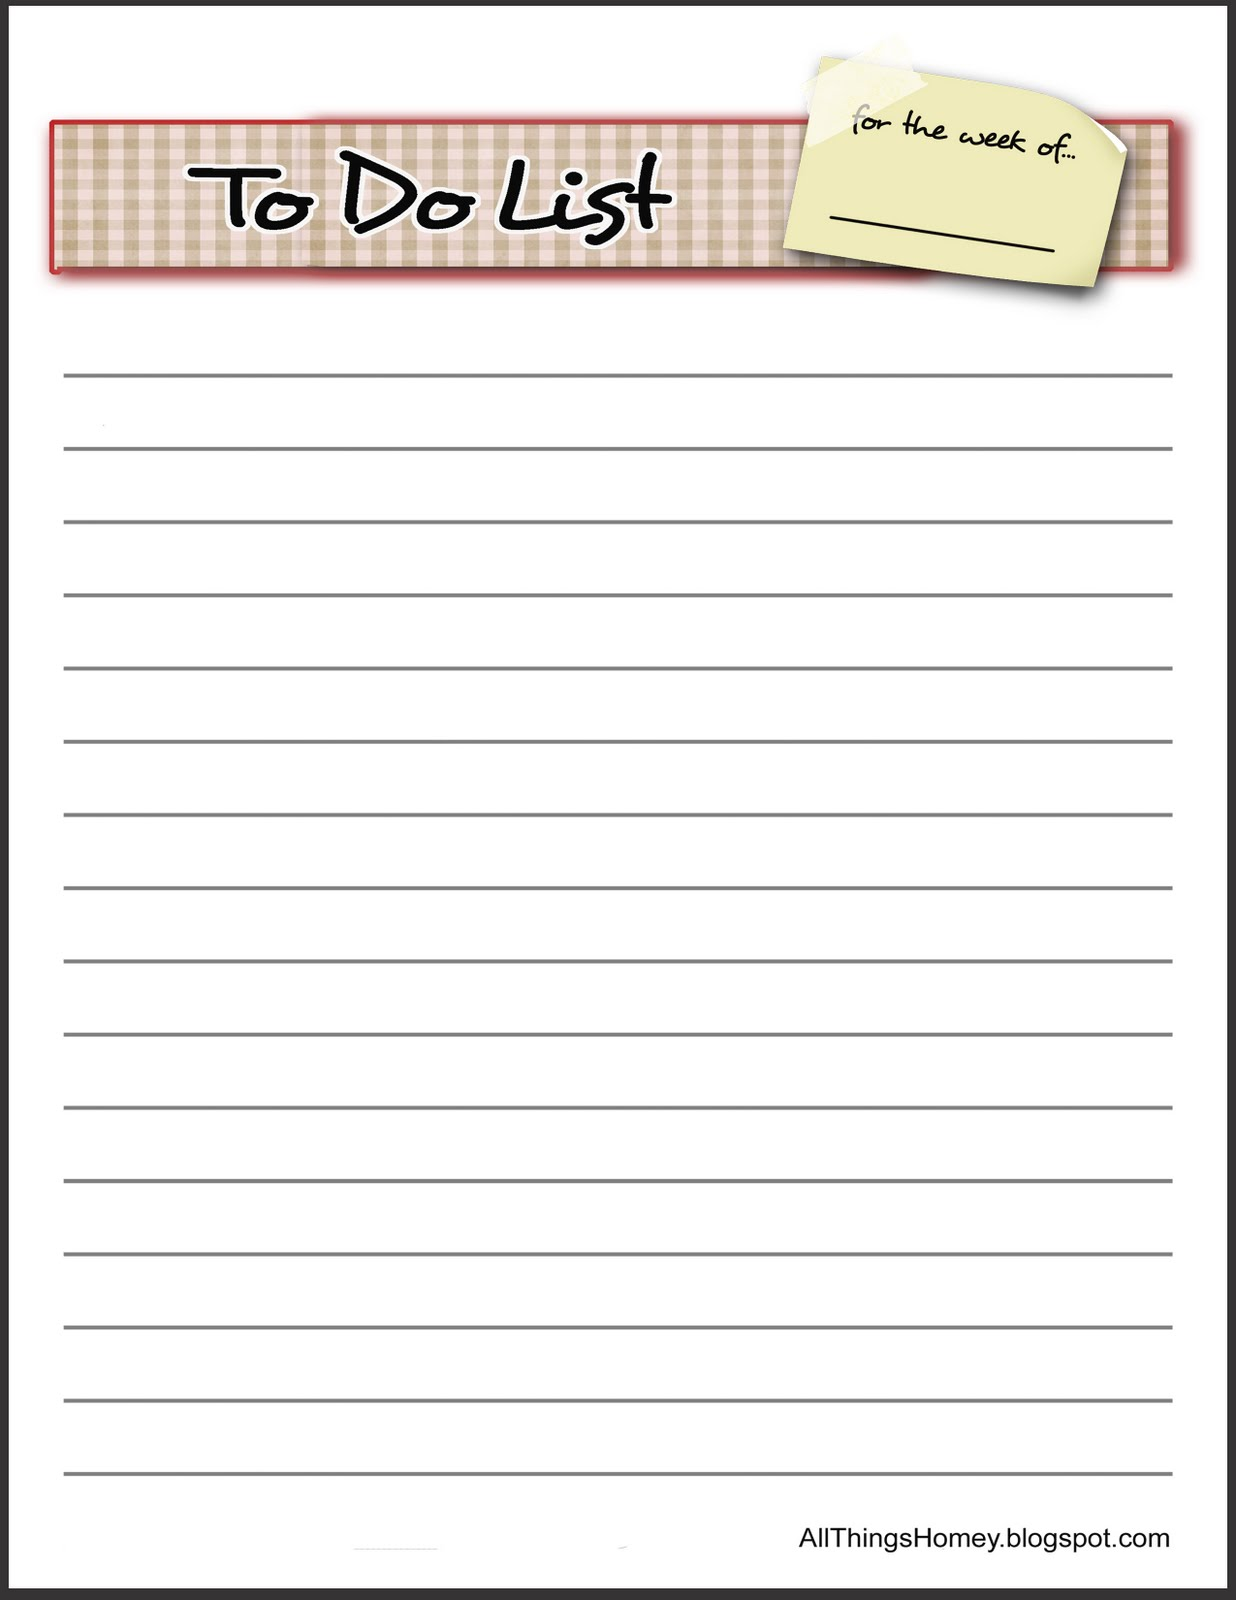 All Things HOMEY: Free ' To Do List' Revised